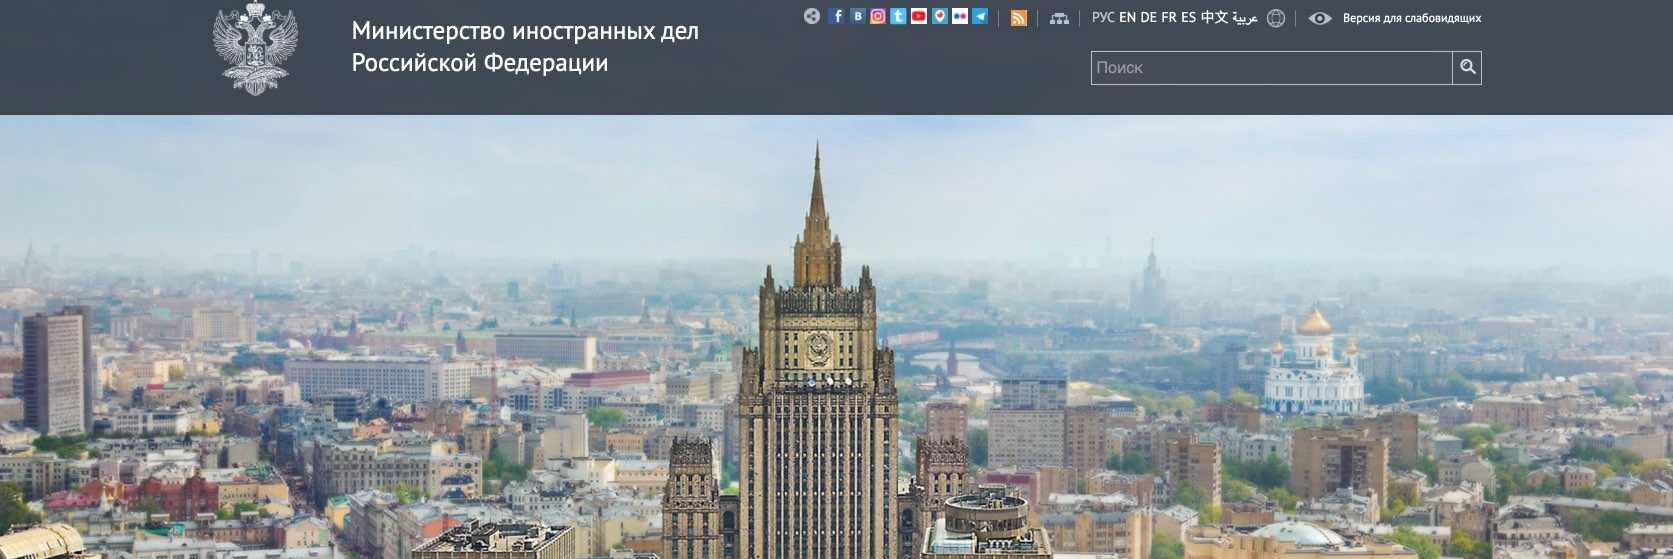 List of Russian Embassies and Consulates - Official Websites